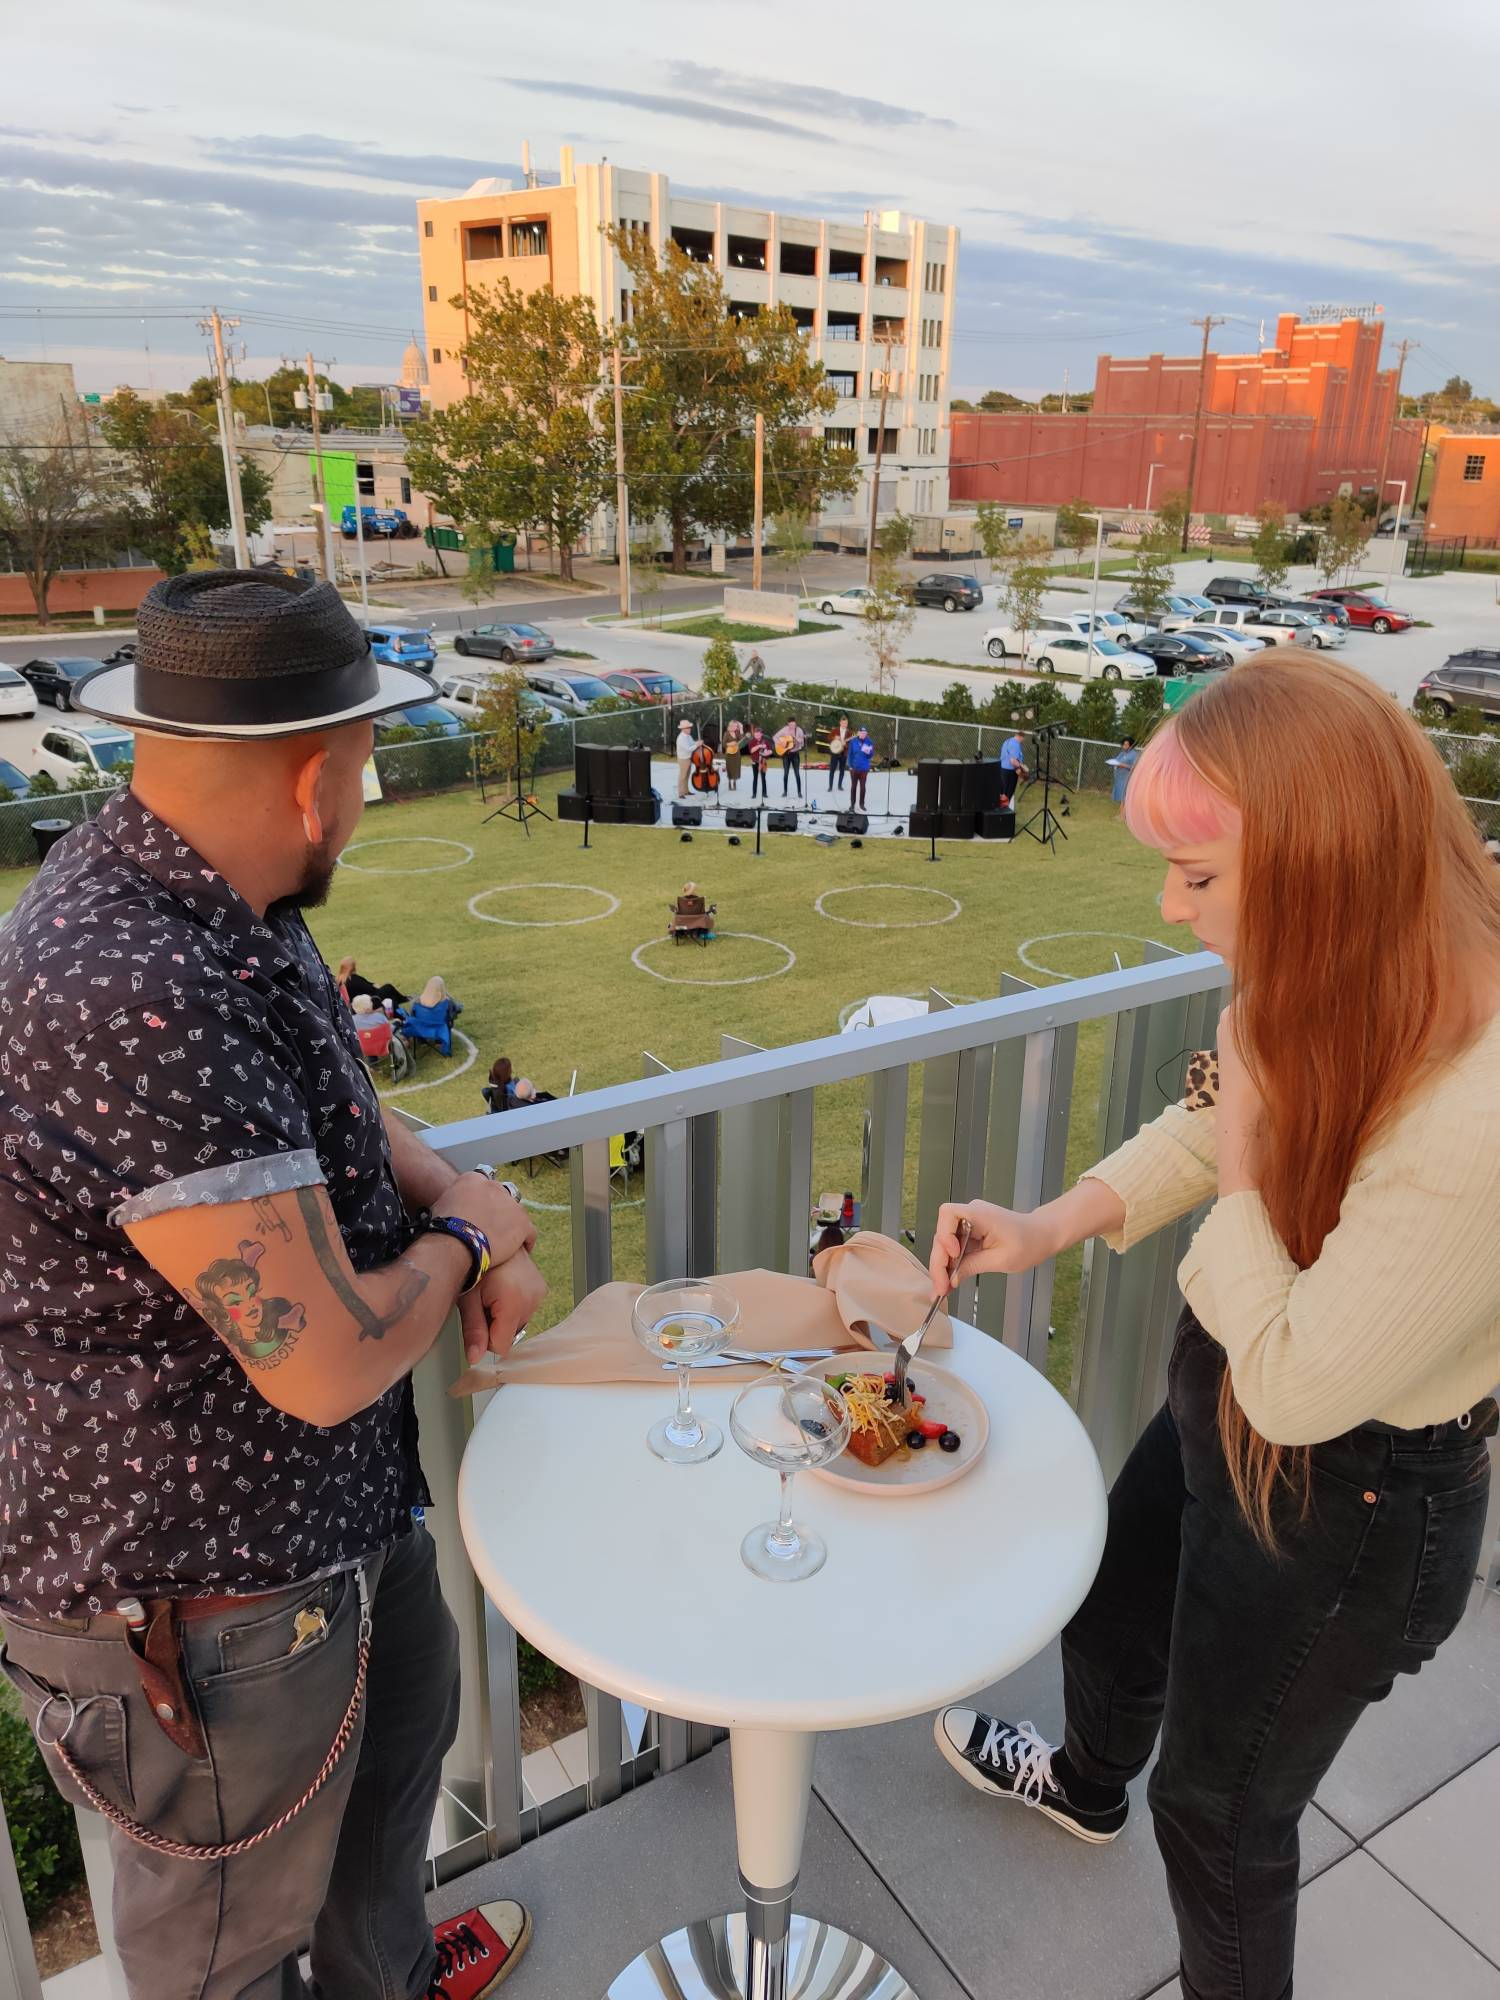 Two people eat on a terrace overlooking live music on an outdoor lawn in the evening